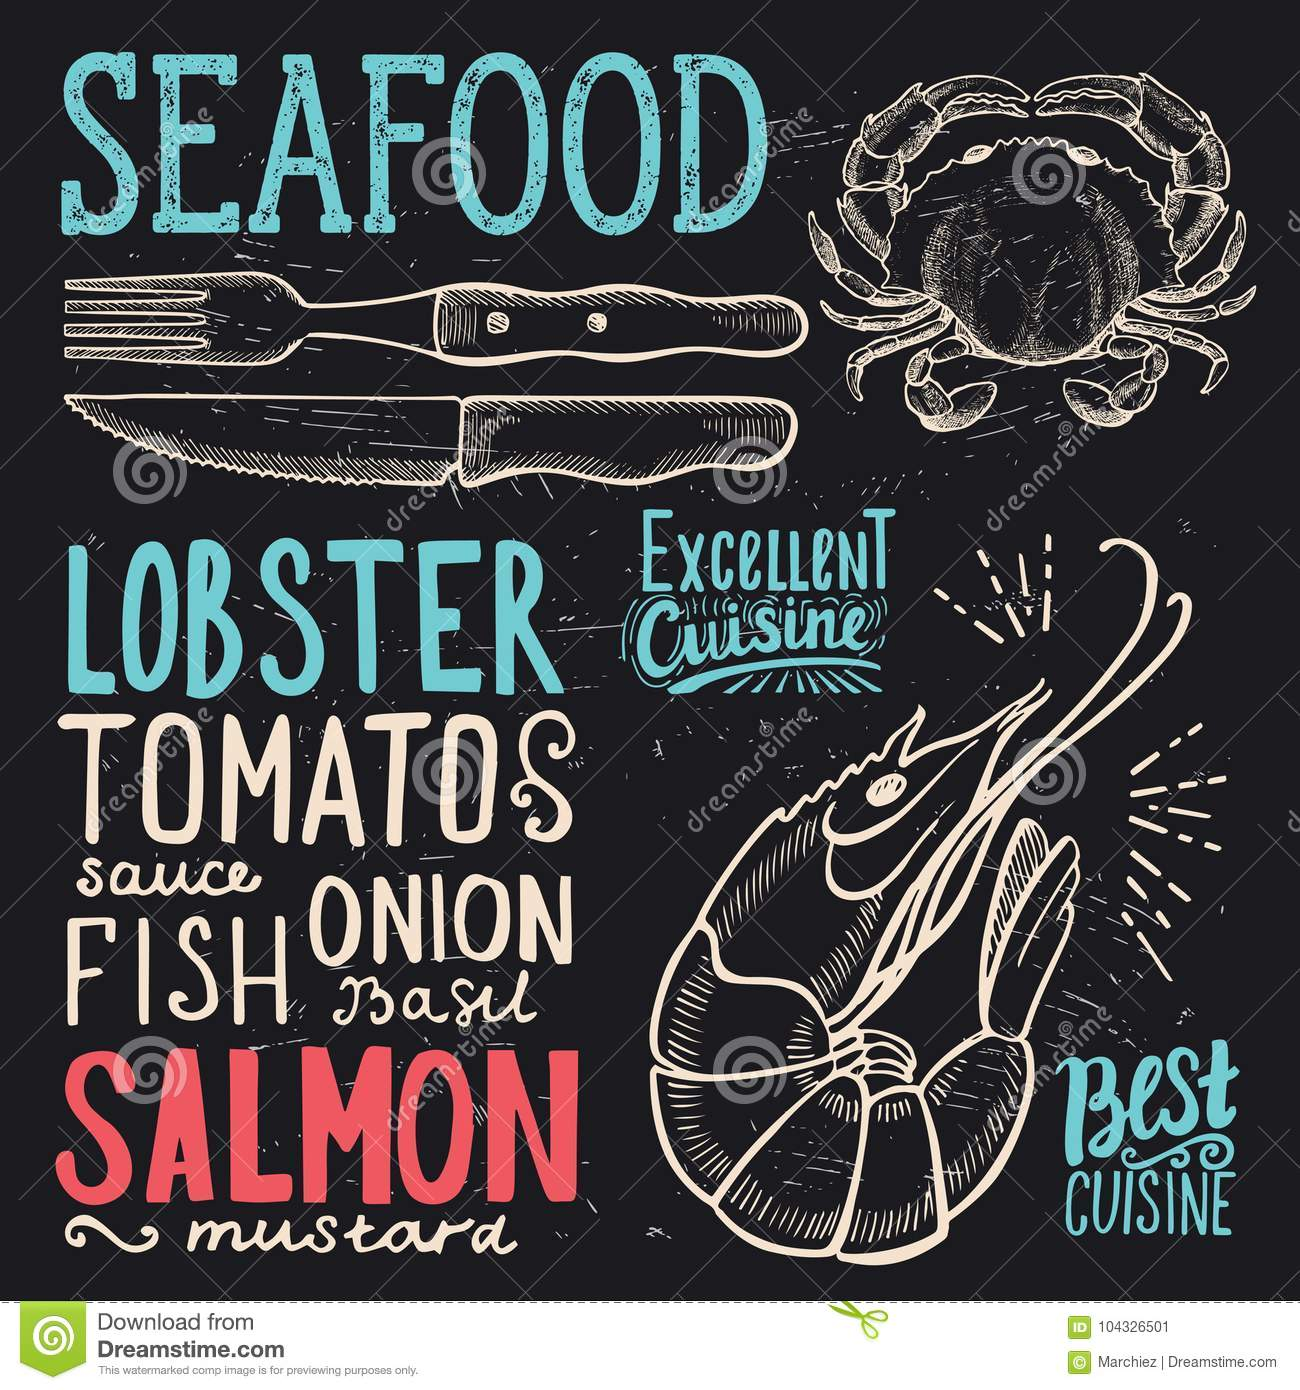 Seafood Poster For Restaurant Food Template Stock Vector Illustration Of Grill Vintage 104326501